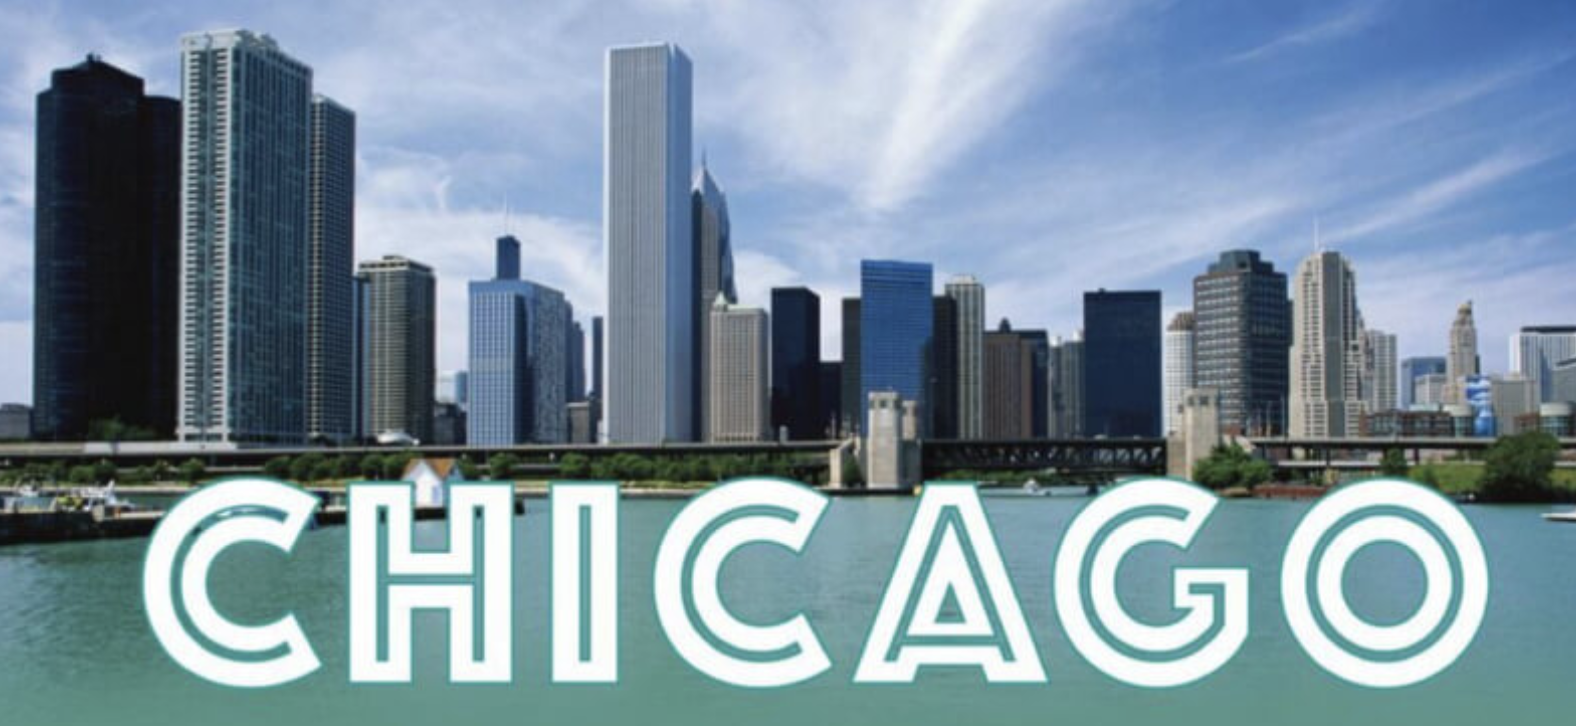 main image for Numismatists Converge on Chicago for ANA Worlds Fair of Money Amid Top Gold Levels